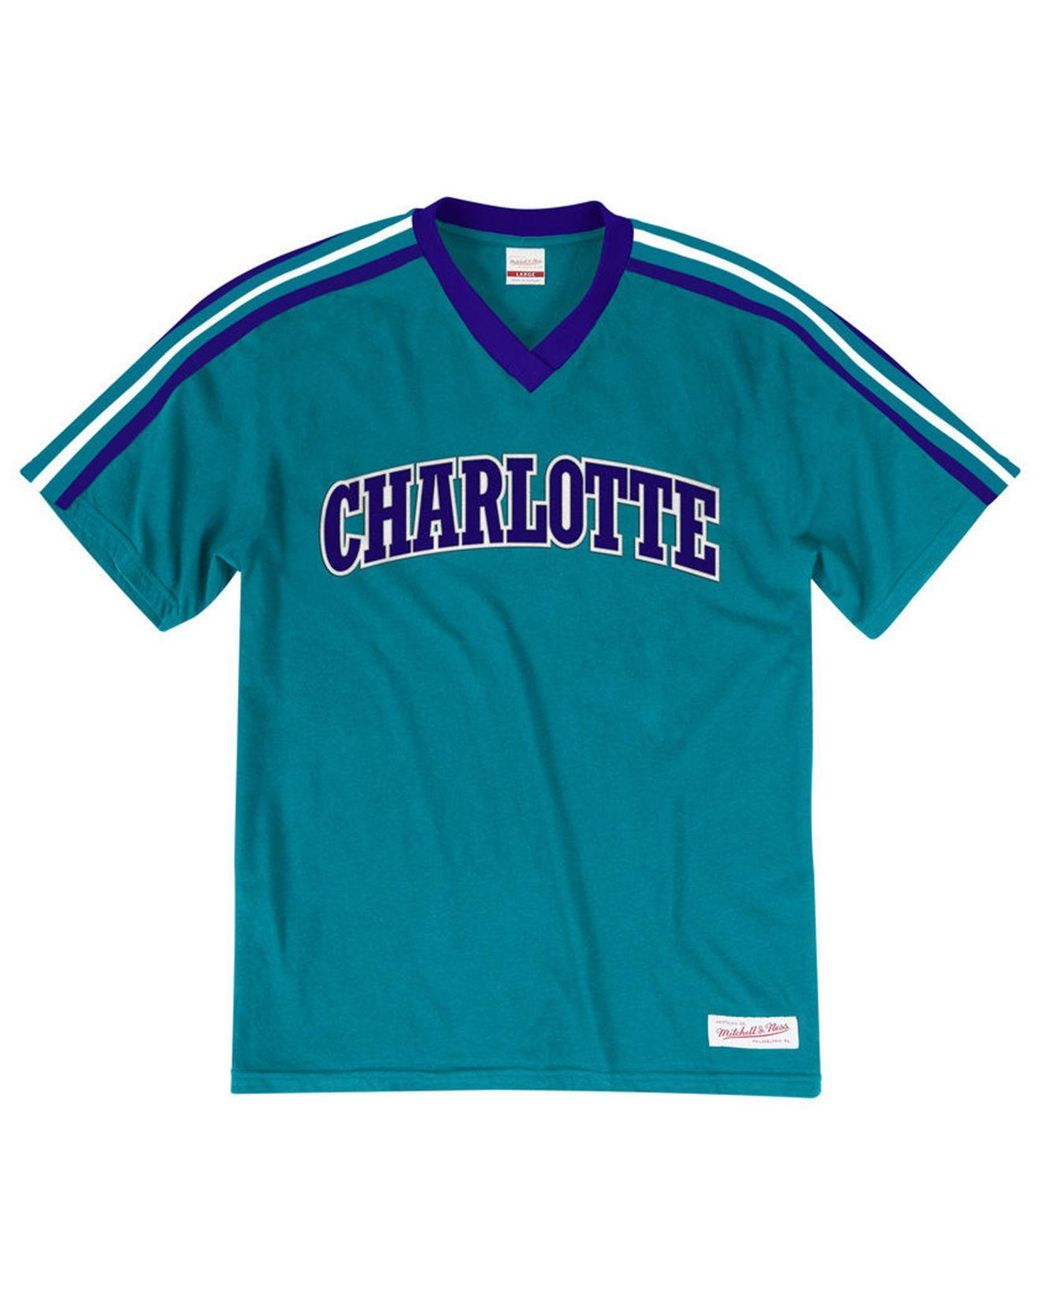 53daa4a6797 Lyst - Mitchell   Ness Charlotte Hornets Overtime Win V-neck T-shirt in  Blue for Men